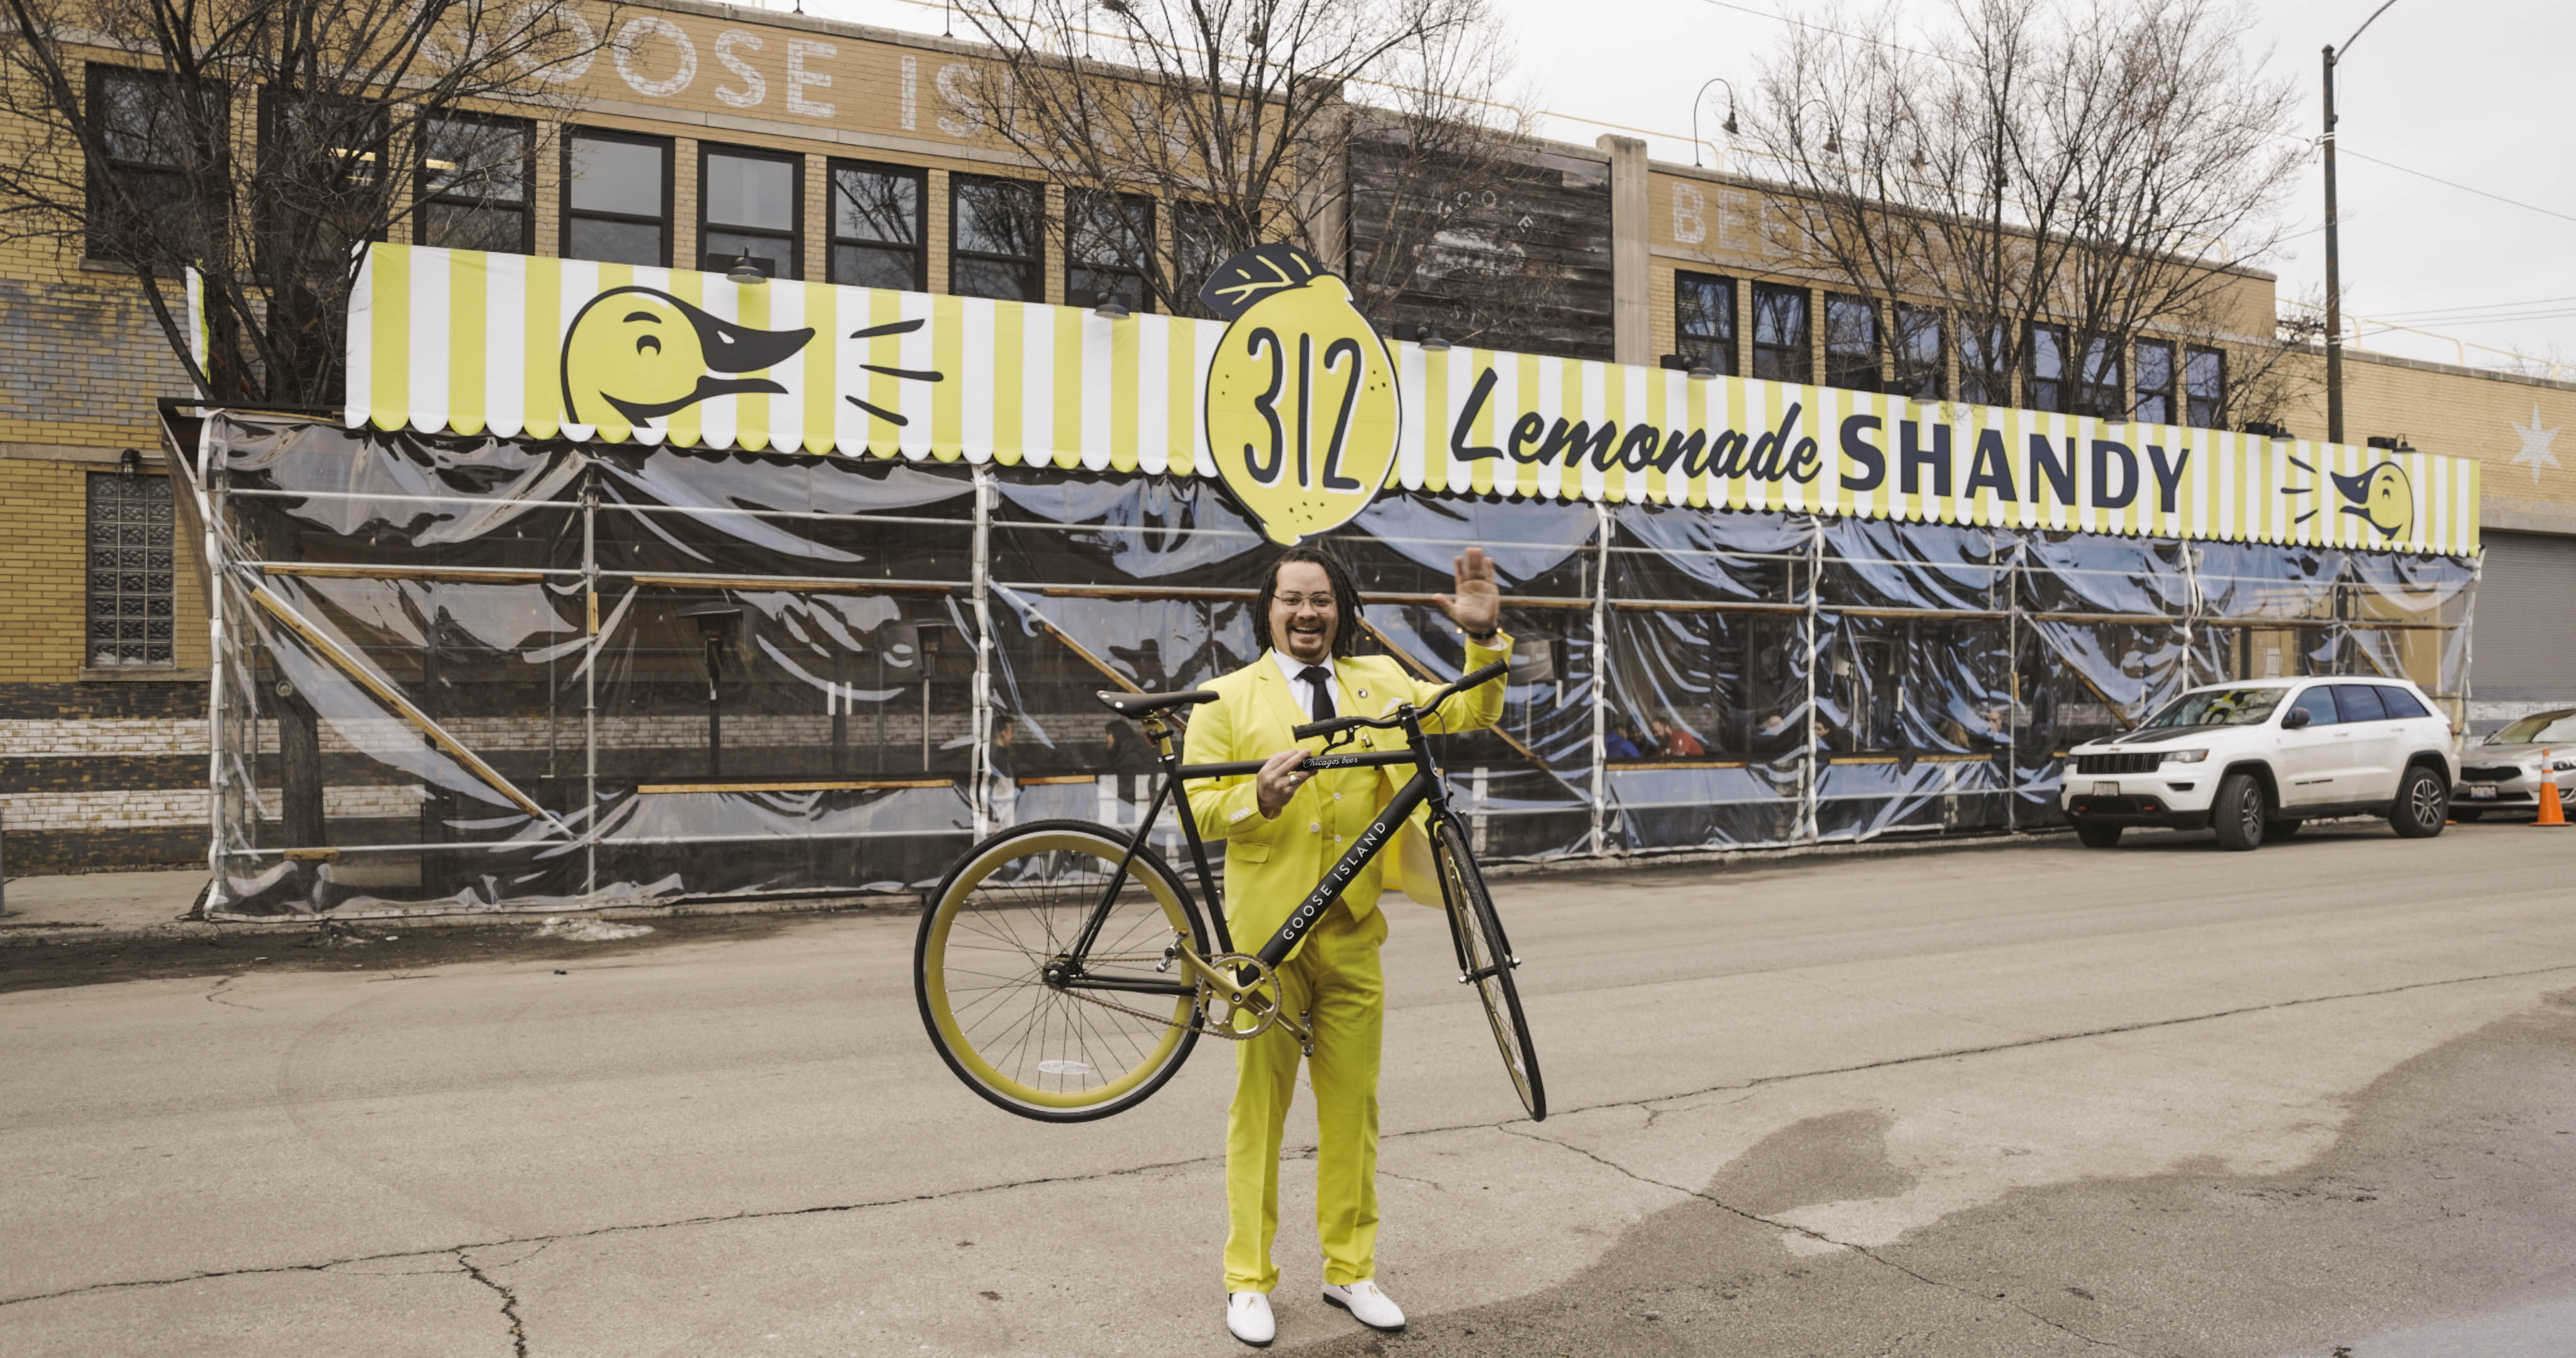 You could win one of these Goose Island Beer-branded bikes if you are among the finders of giant lemons scattered across Chicago on March 12.